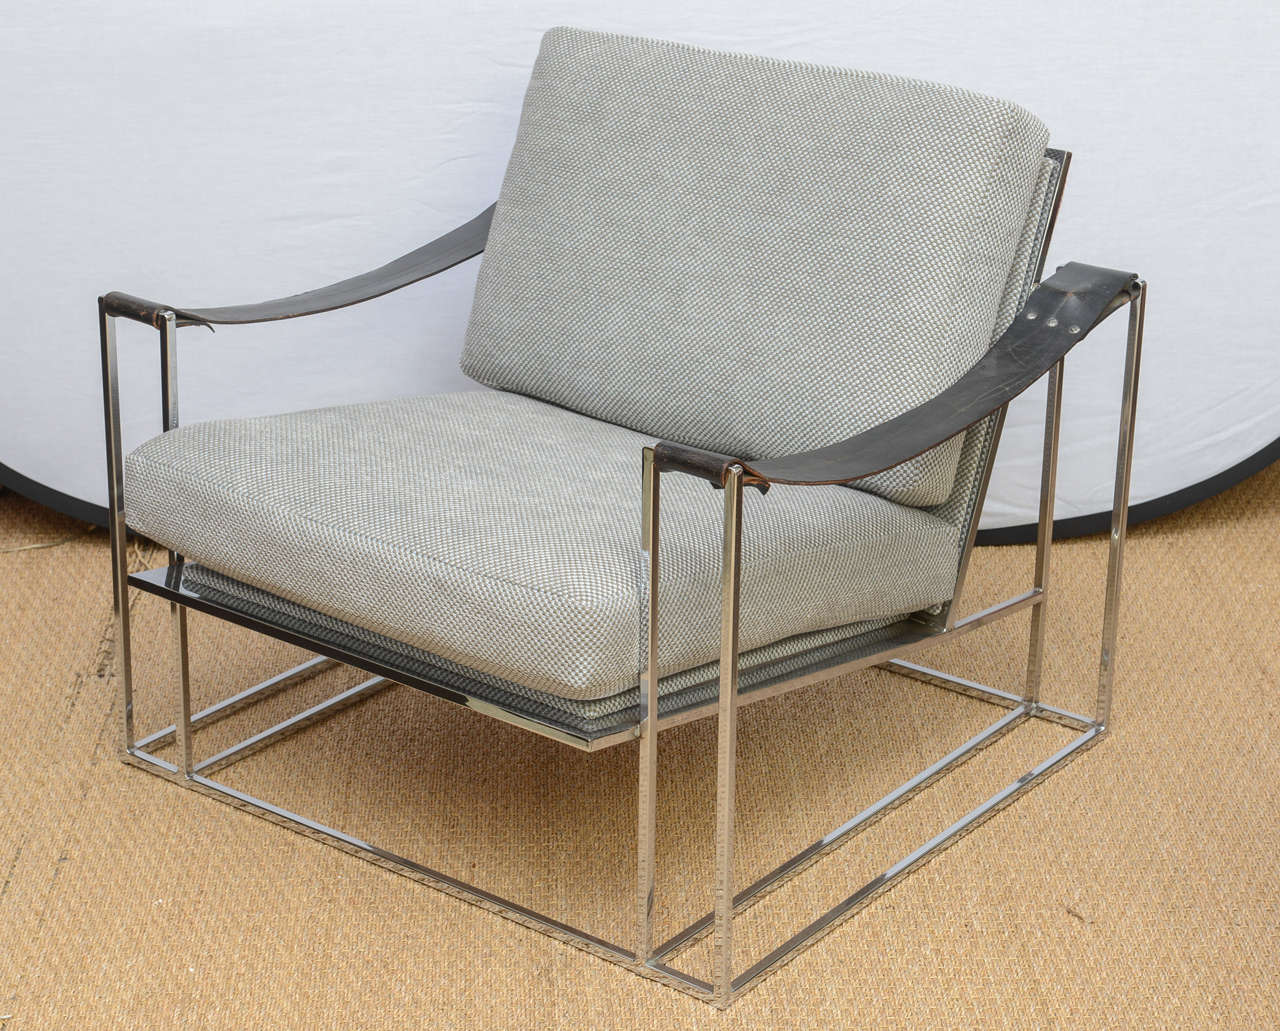 Floating Chairs Milo Baughman Floating Lounge Chair Pair Circa 1972 At